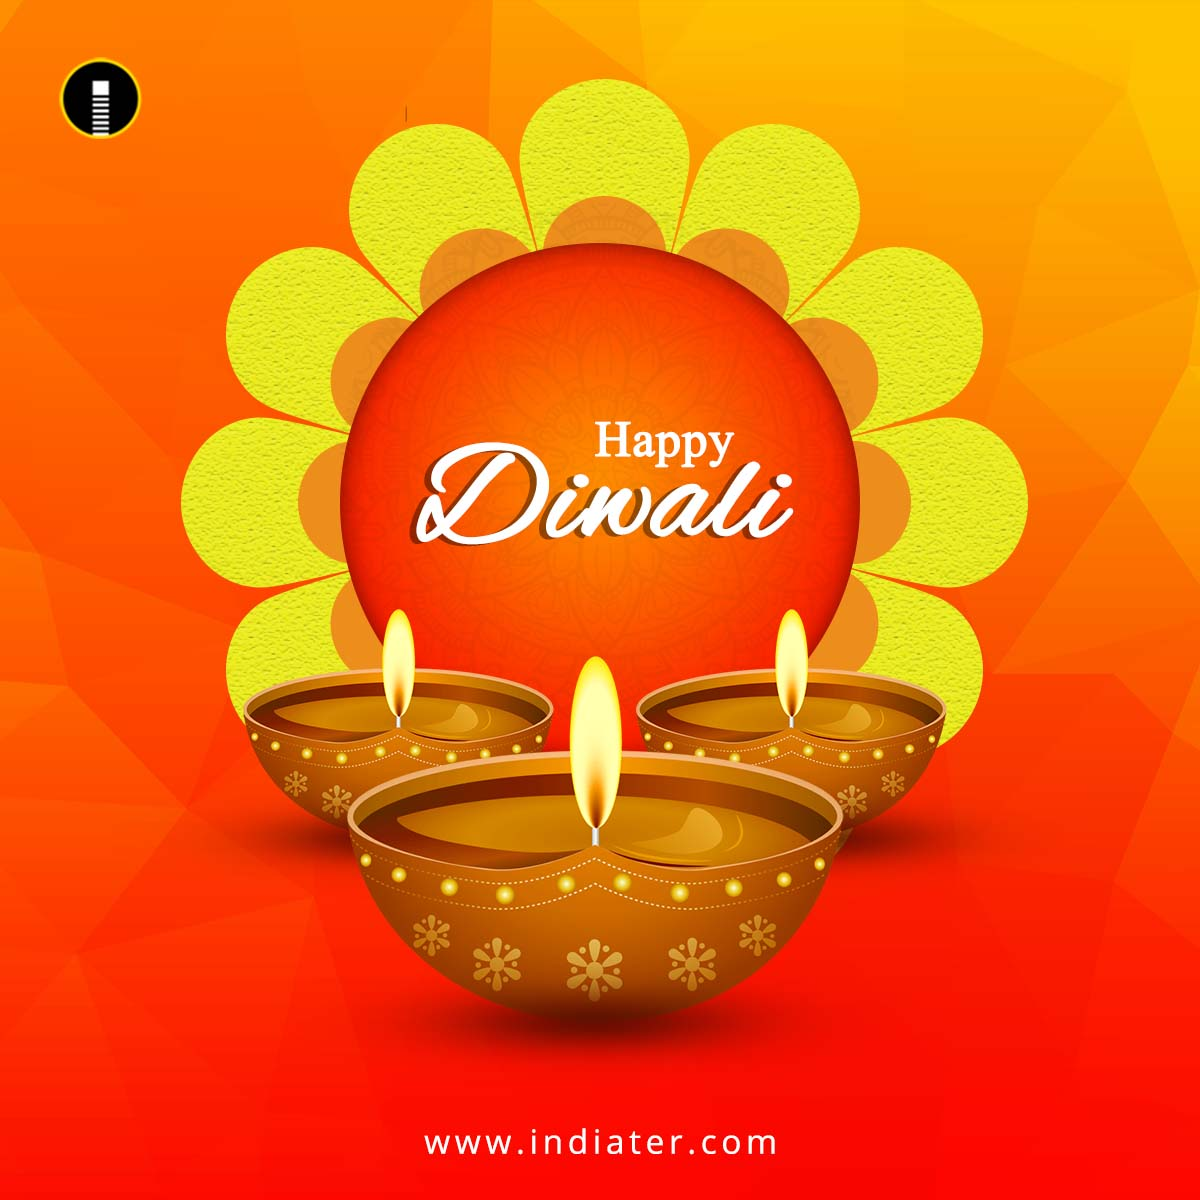 diwali-festival-design-greeting-card-free-download